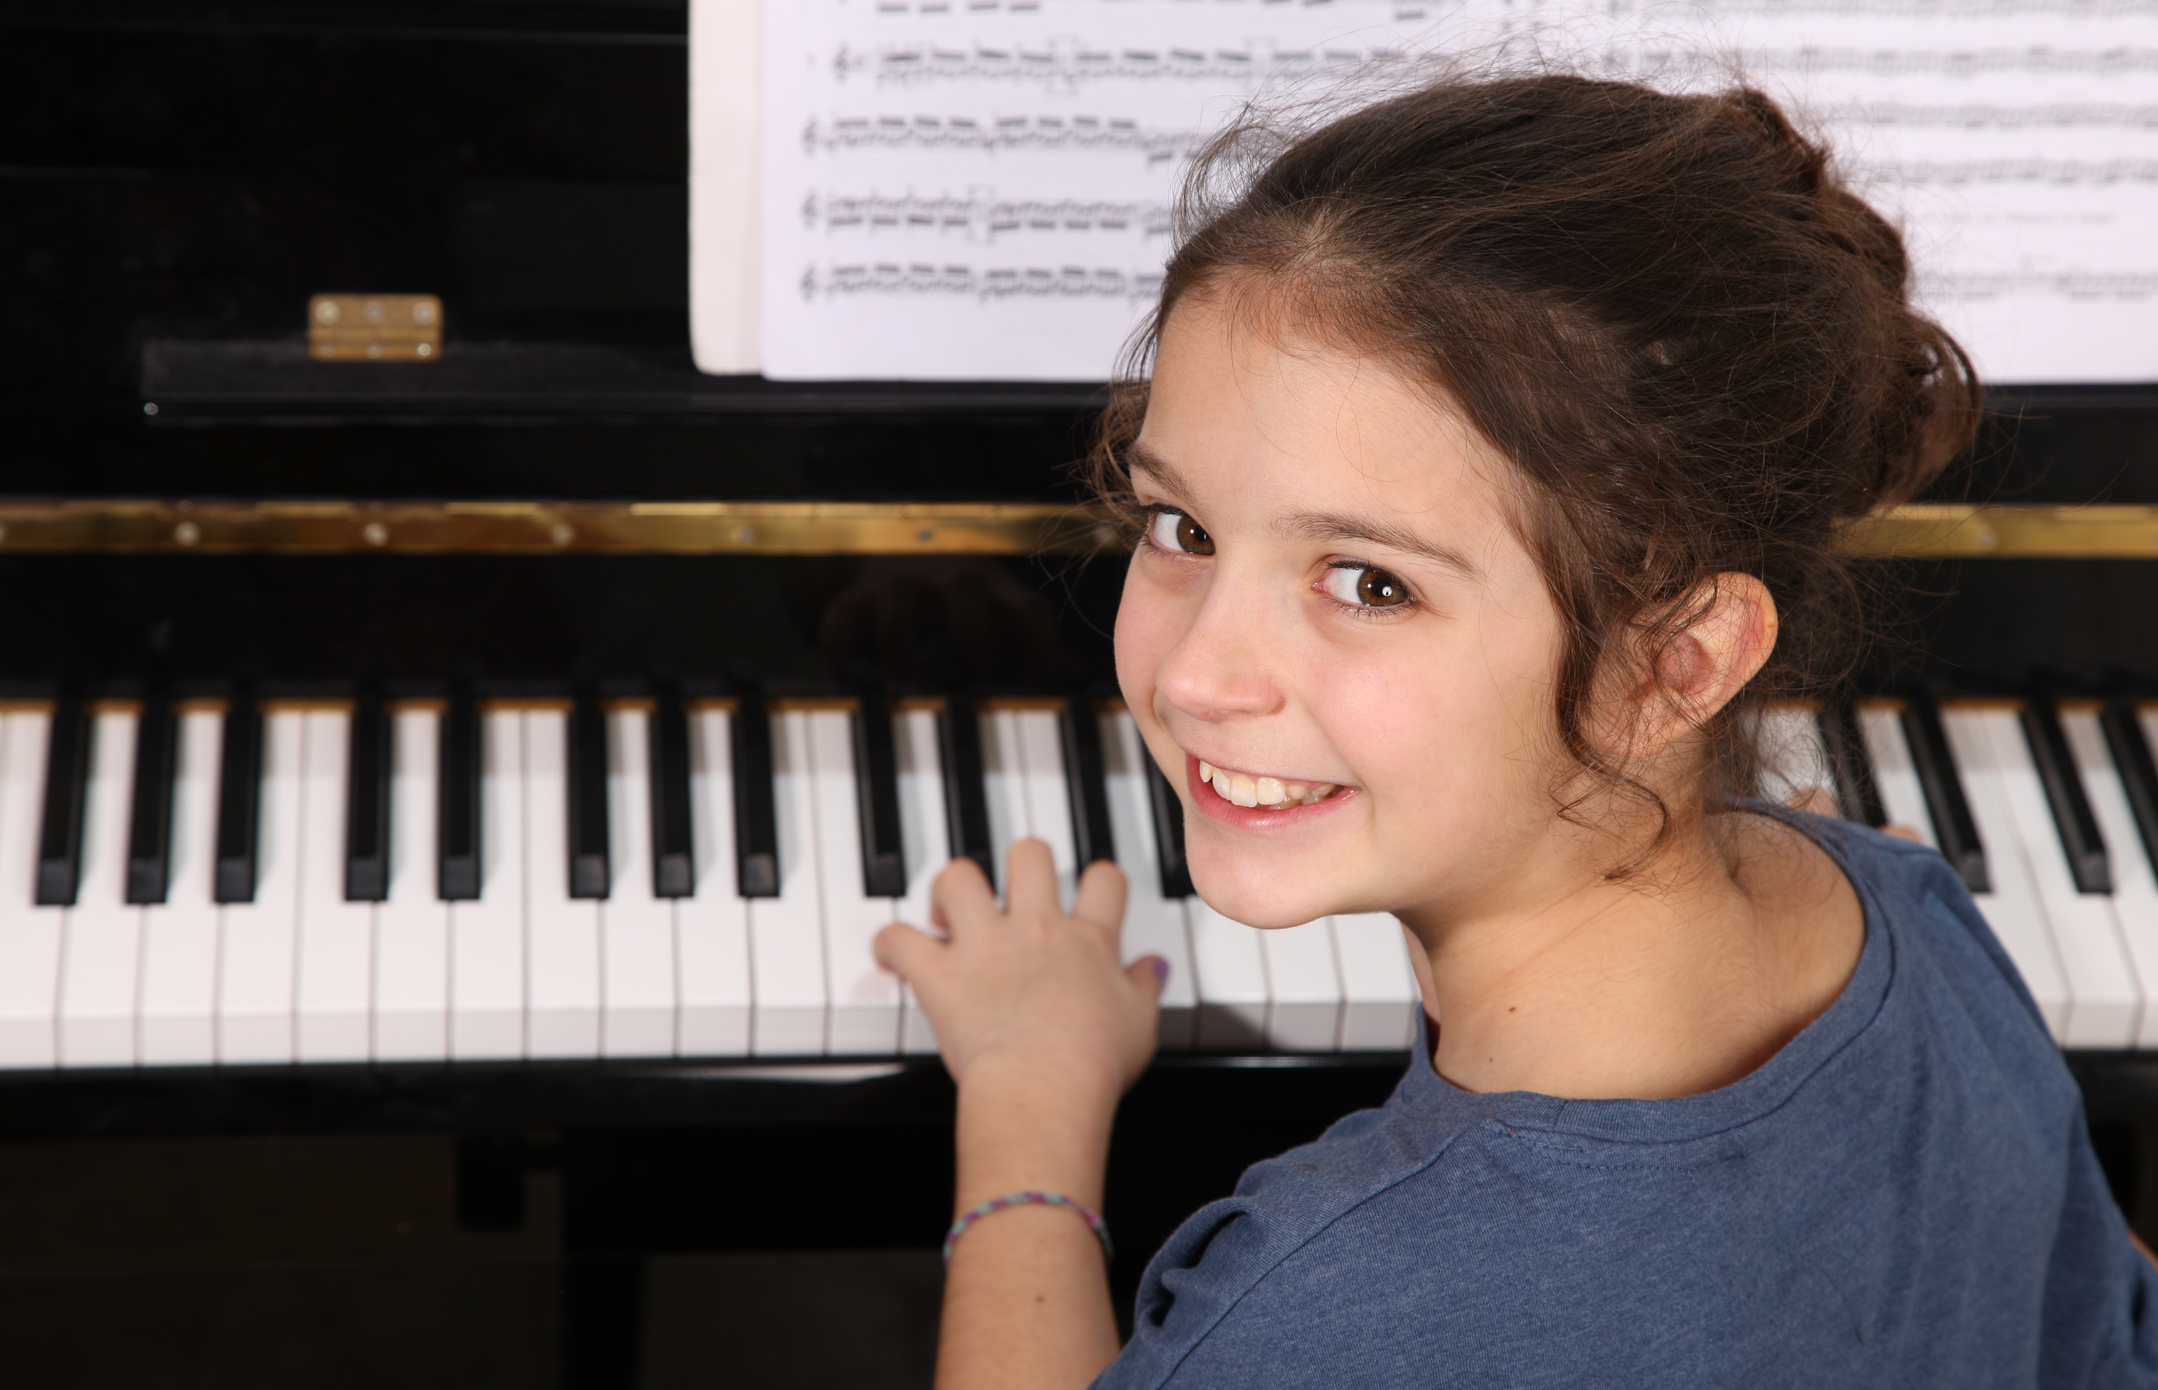 - Over 100 students have studied at the Jacob Fitzpatrick piano studio.